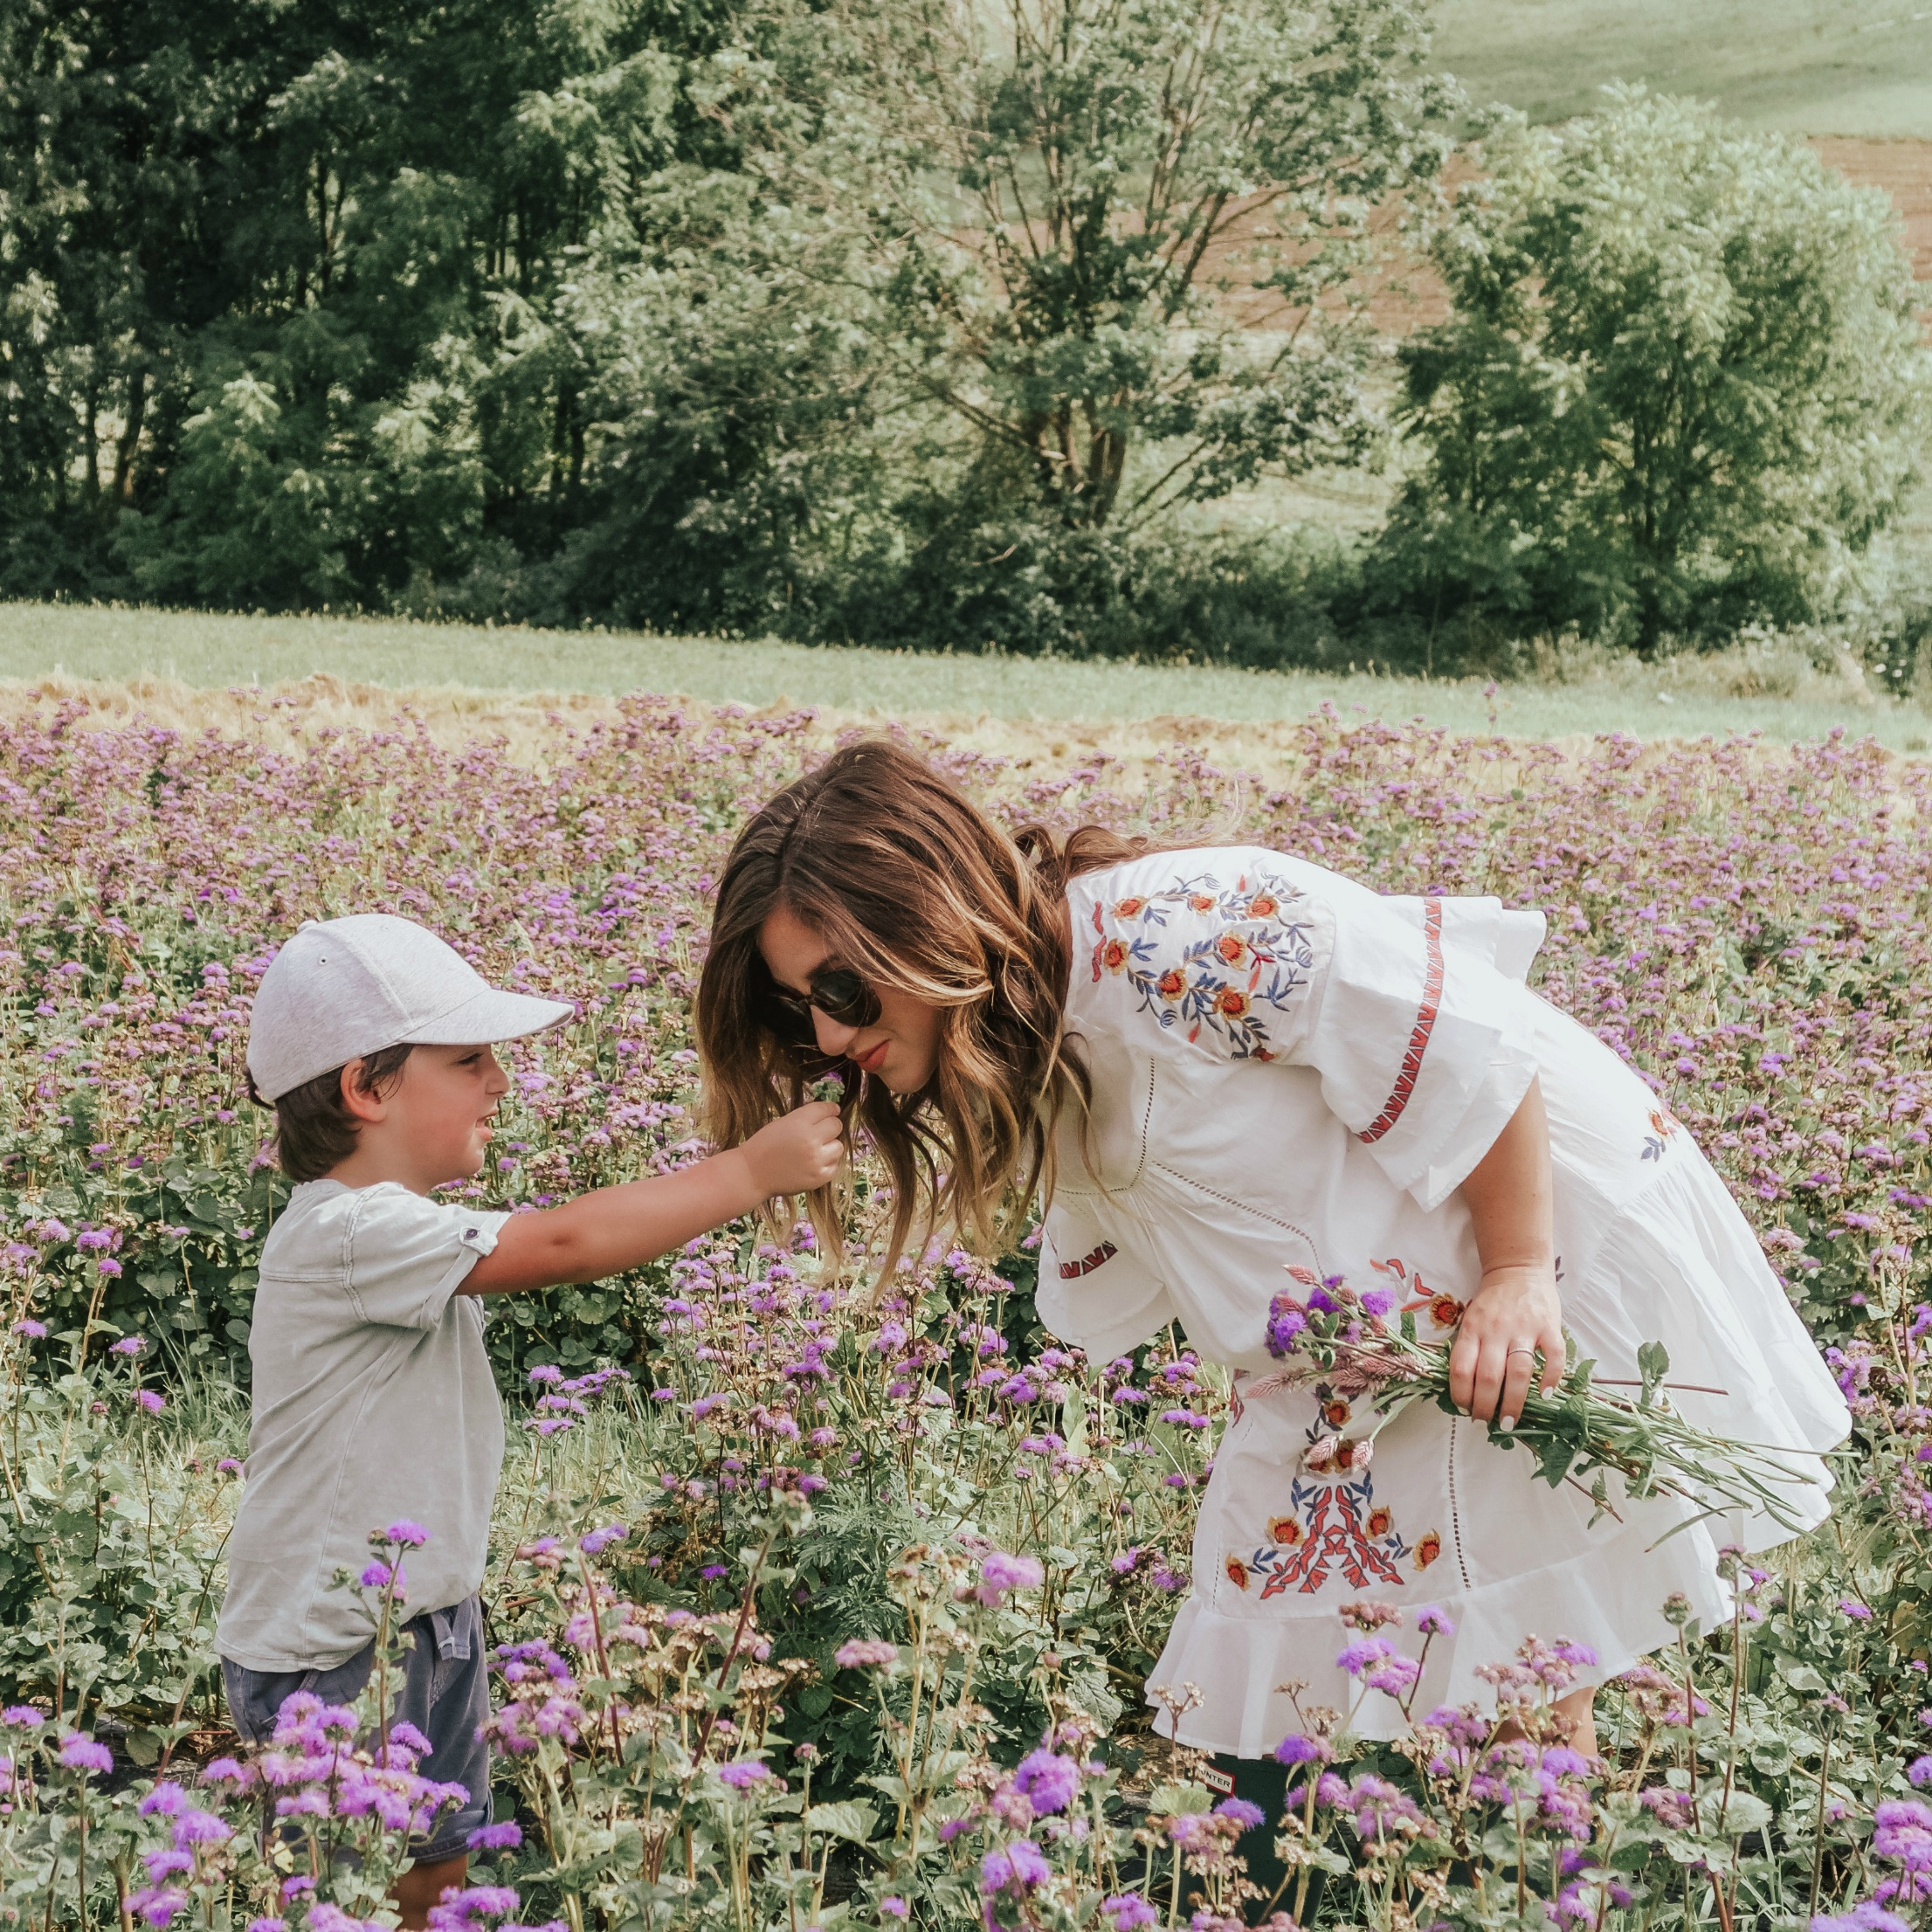 Tips For Visiting A You Pick Flower Farm Zoe With Love